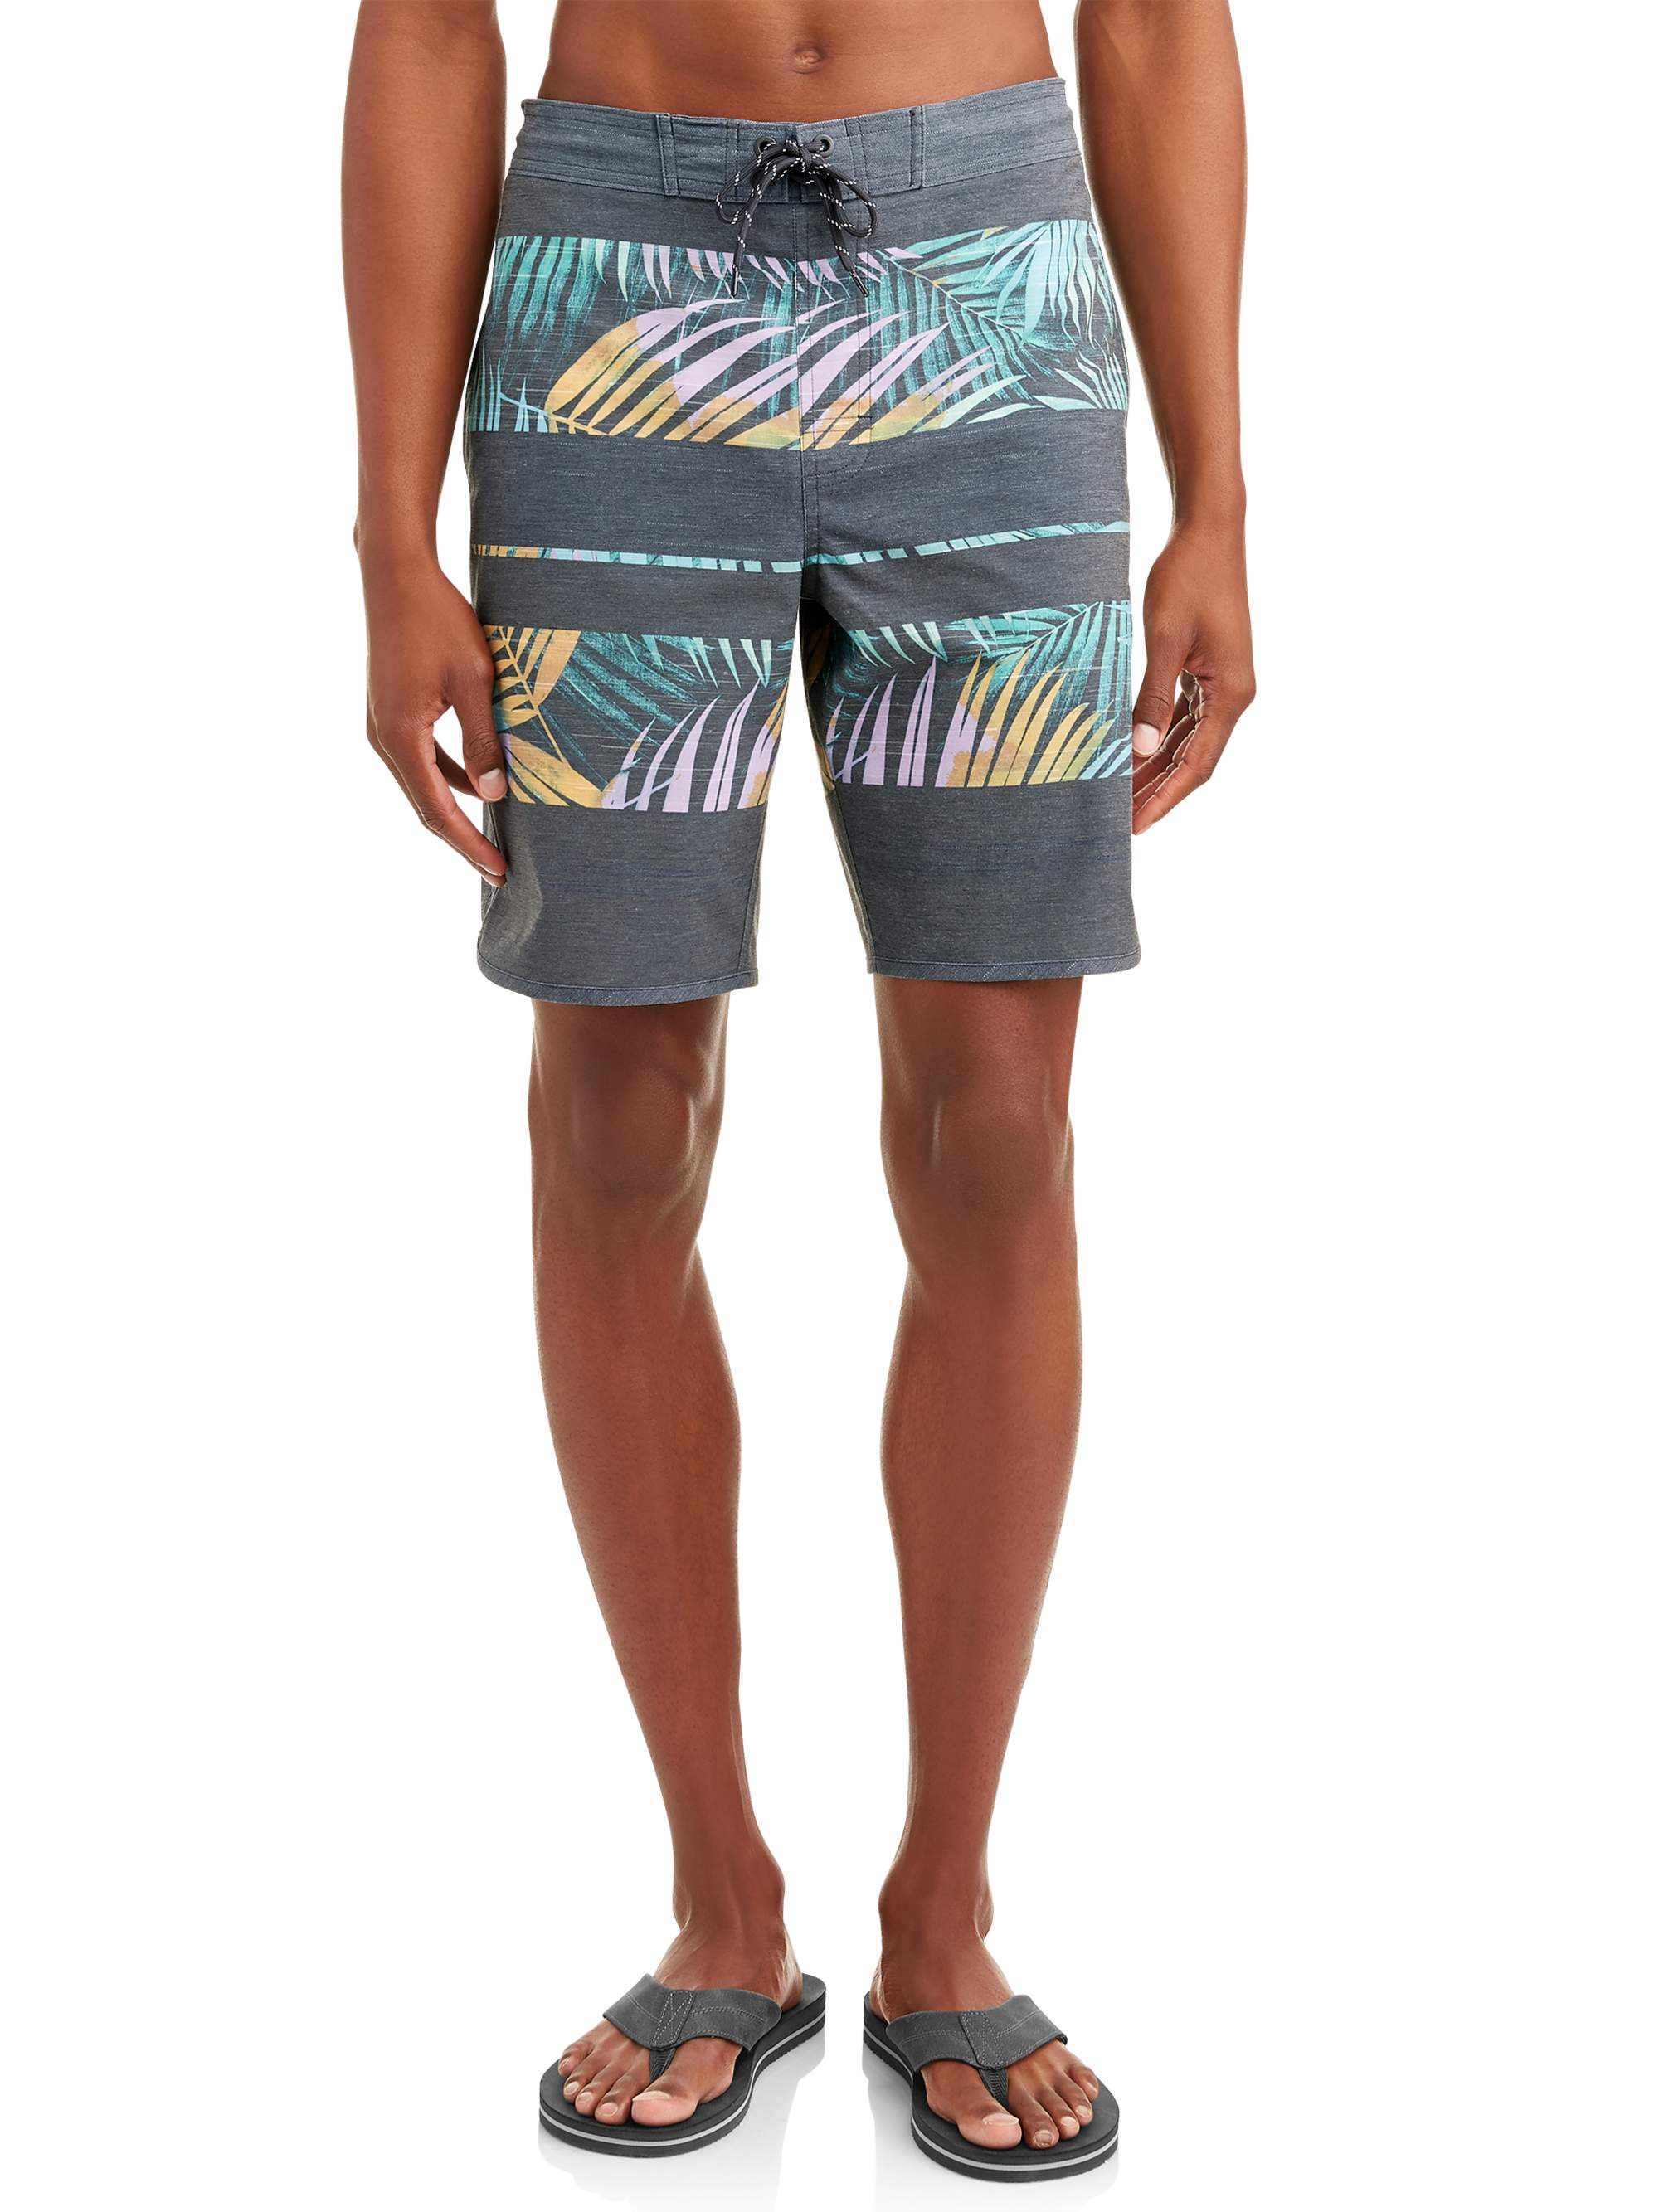 Men's Rainbow Palms Eboard, up to Size 5XL